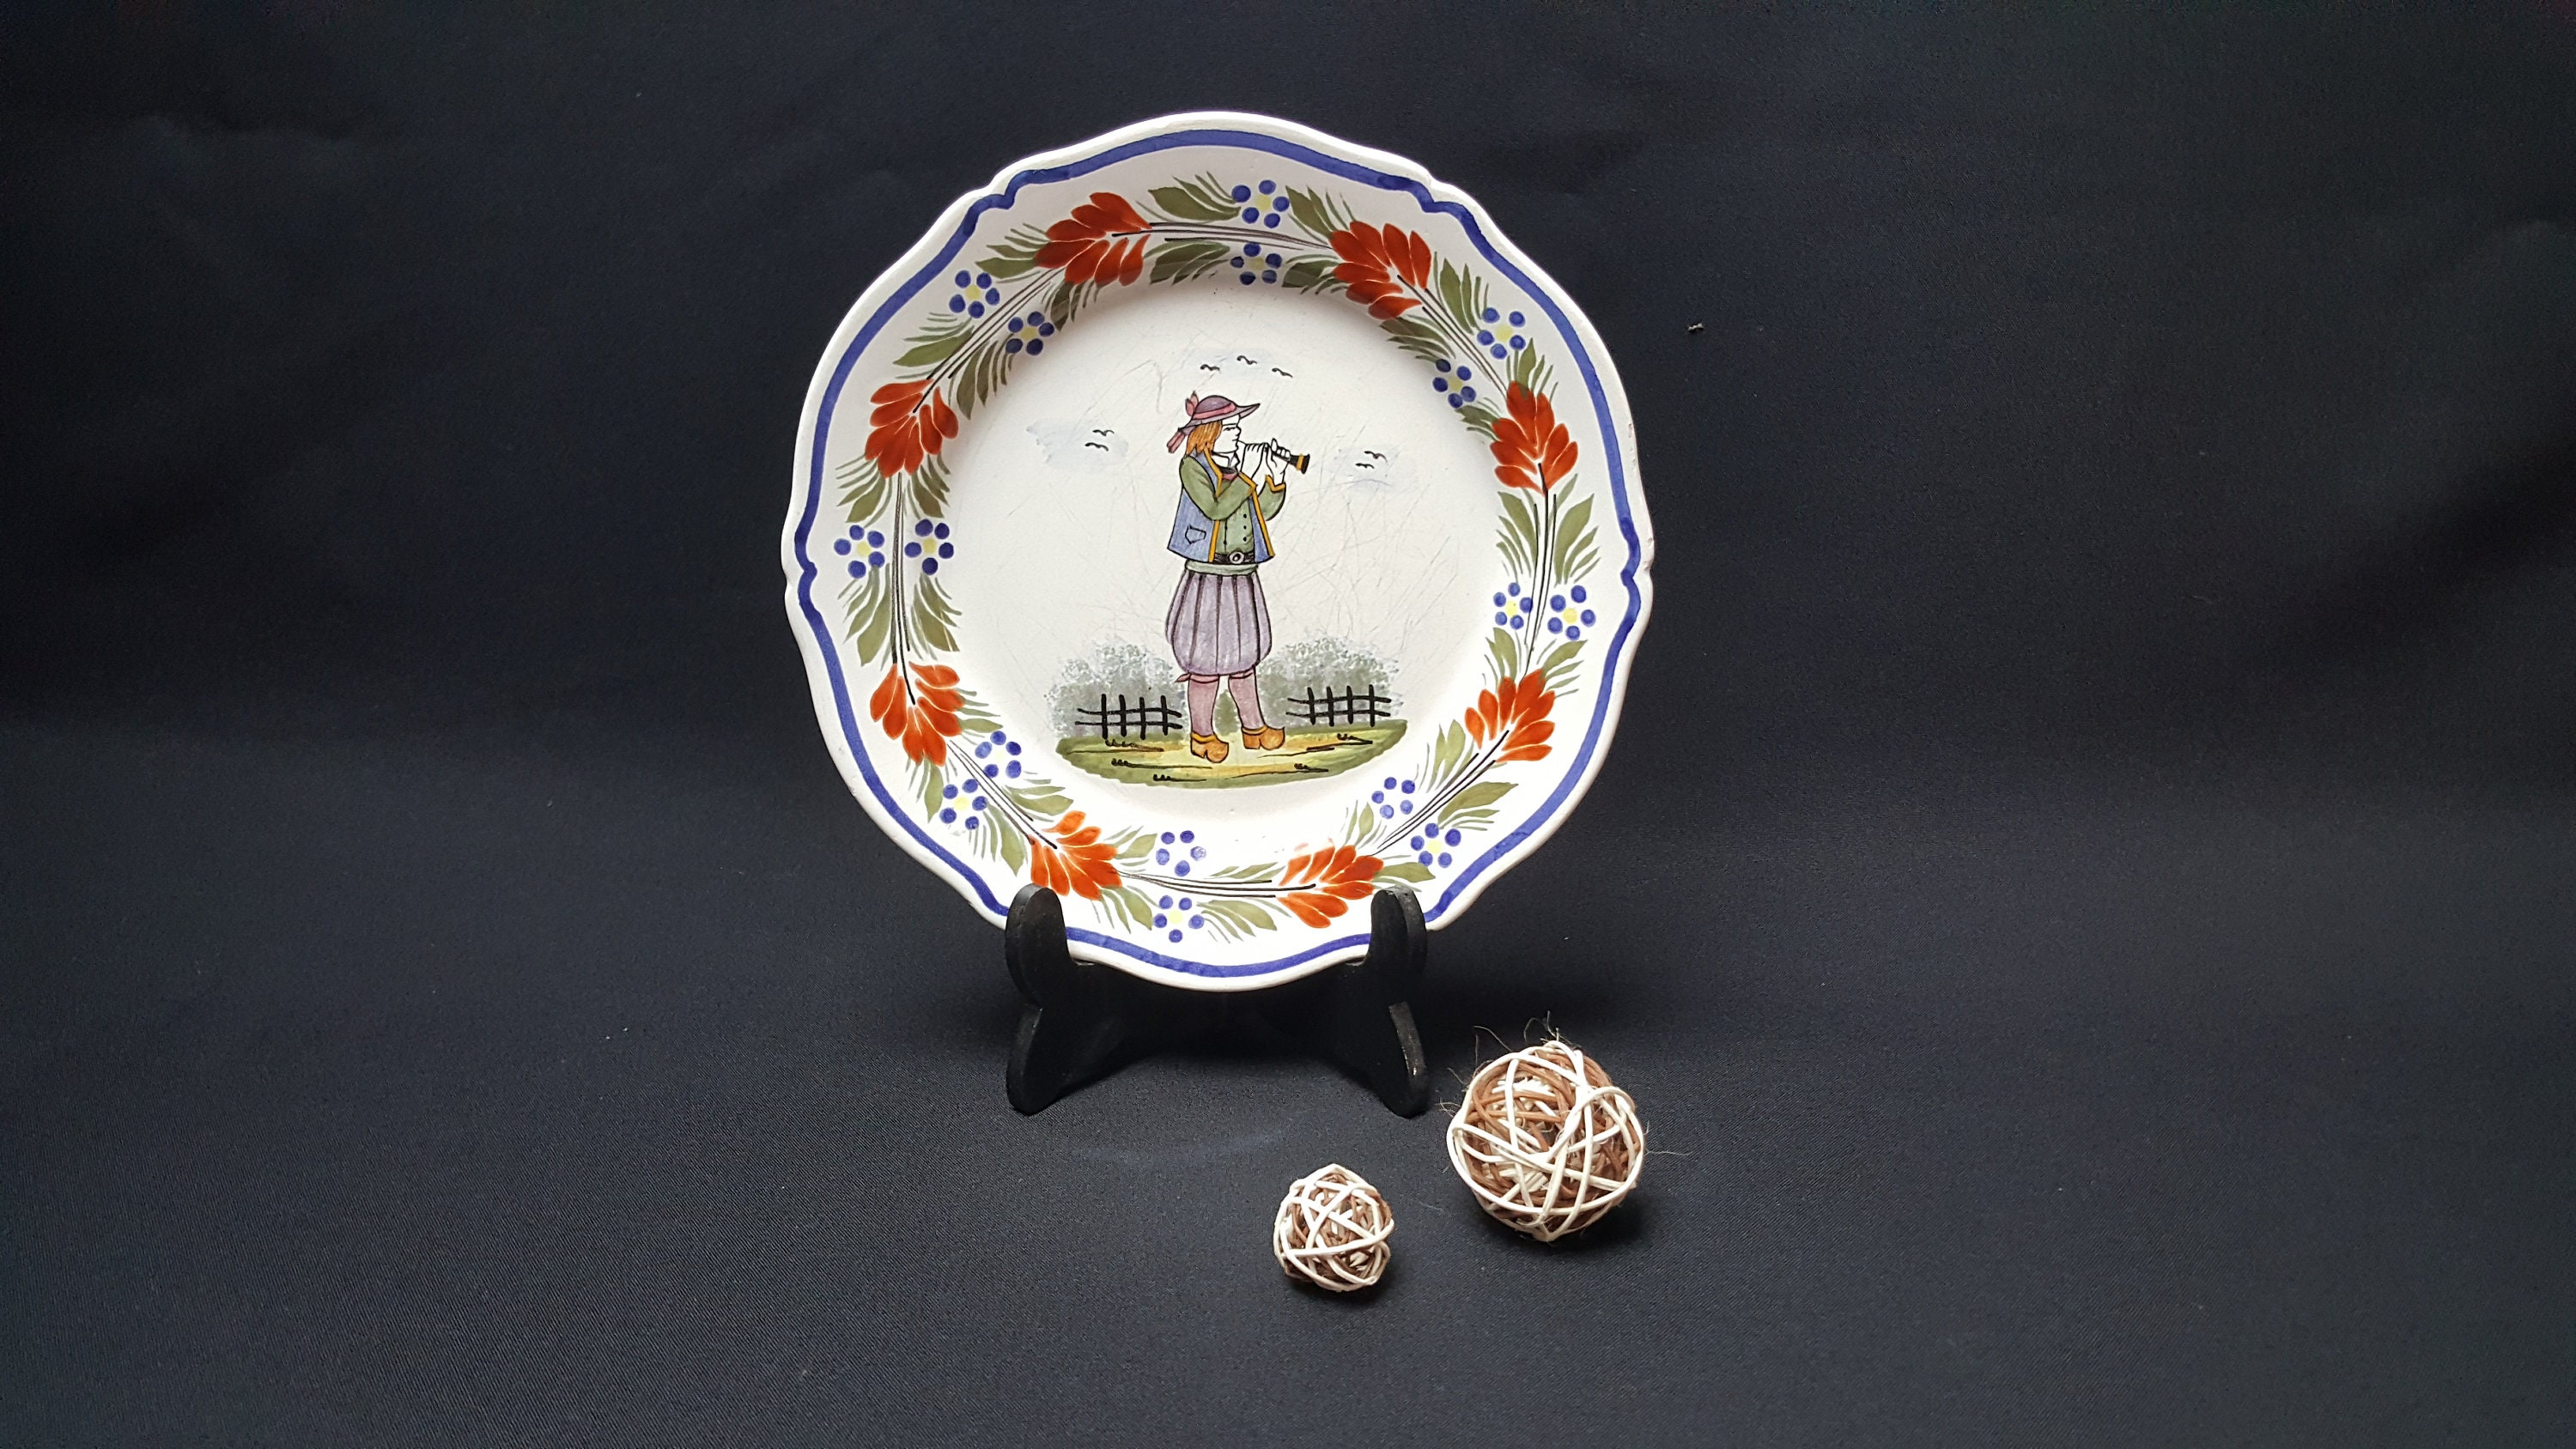 Deco De Table Bretonne plate earthenware brittany hb henriot quimper , breton peasant with a  flute, decoration plate , porcelain french , circa 1960 made in france